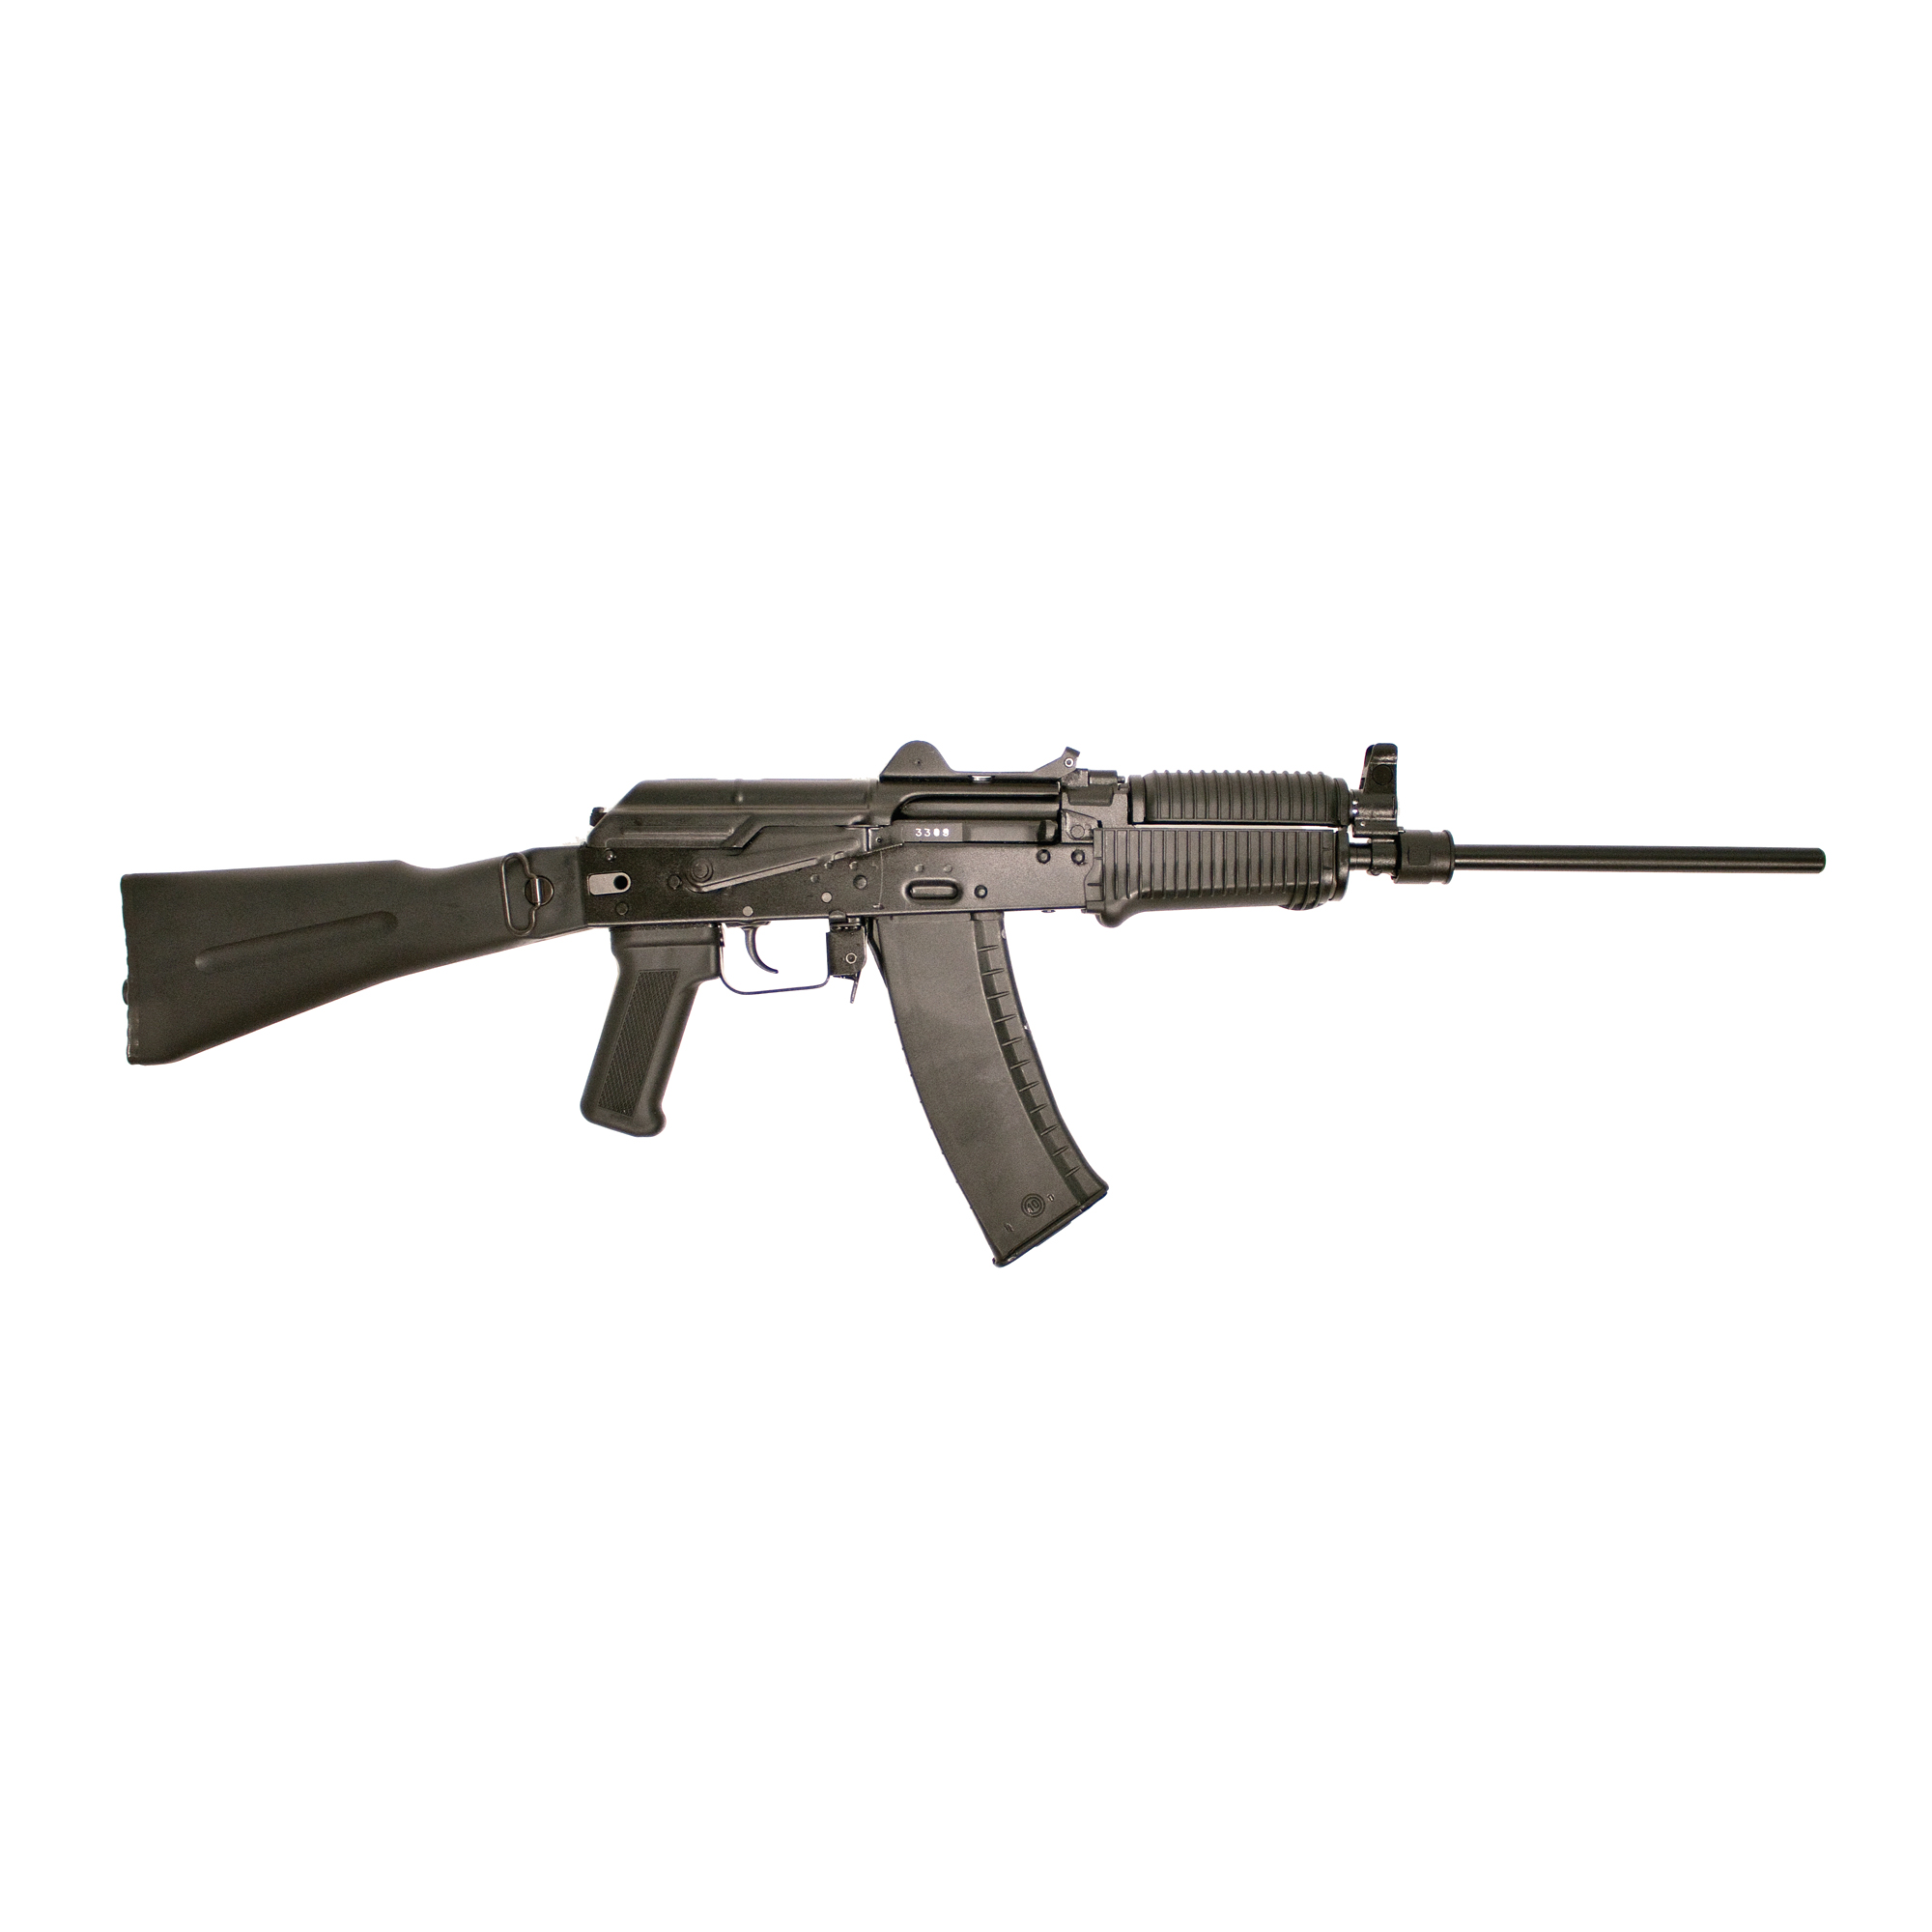 """SLR-104 5.45x39 caliber rifles are top notch"""" Bulgarian made"""" stamped receiver"""" semi-automatic modern sporting rifles remanufactured by Arsenal"""" Inc. in Las Vegas"""" Nevada."""